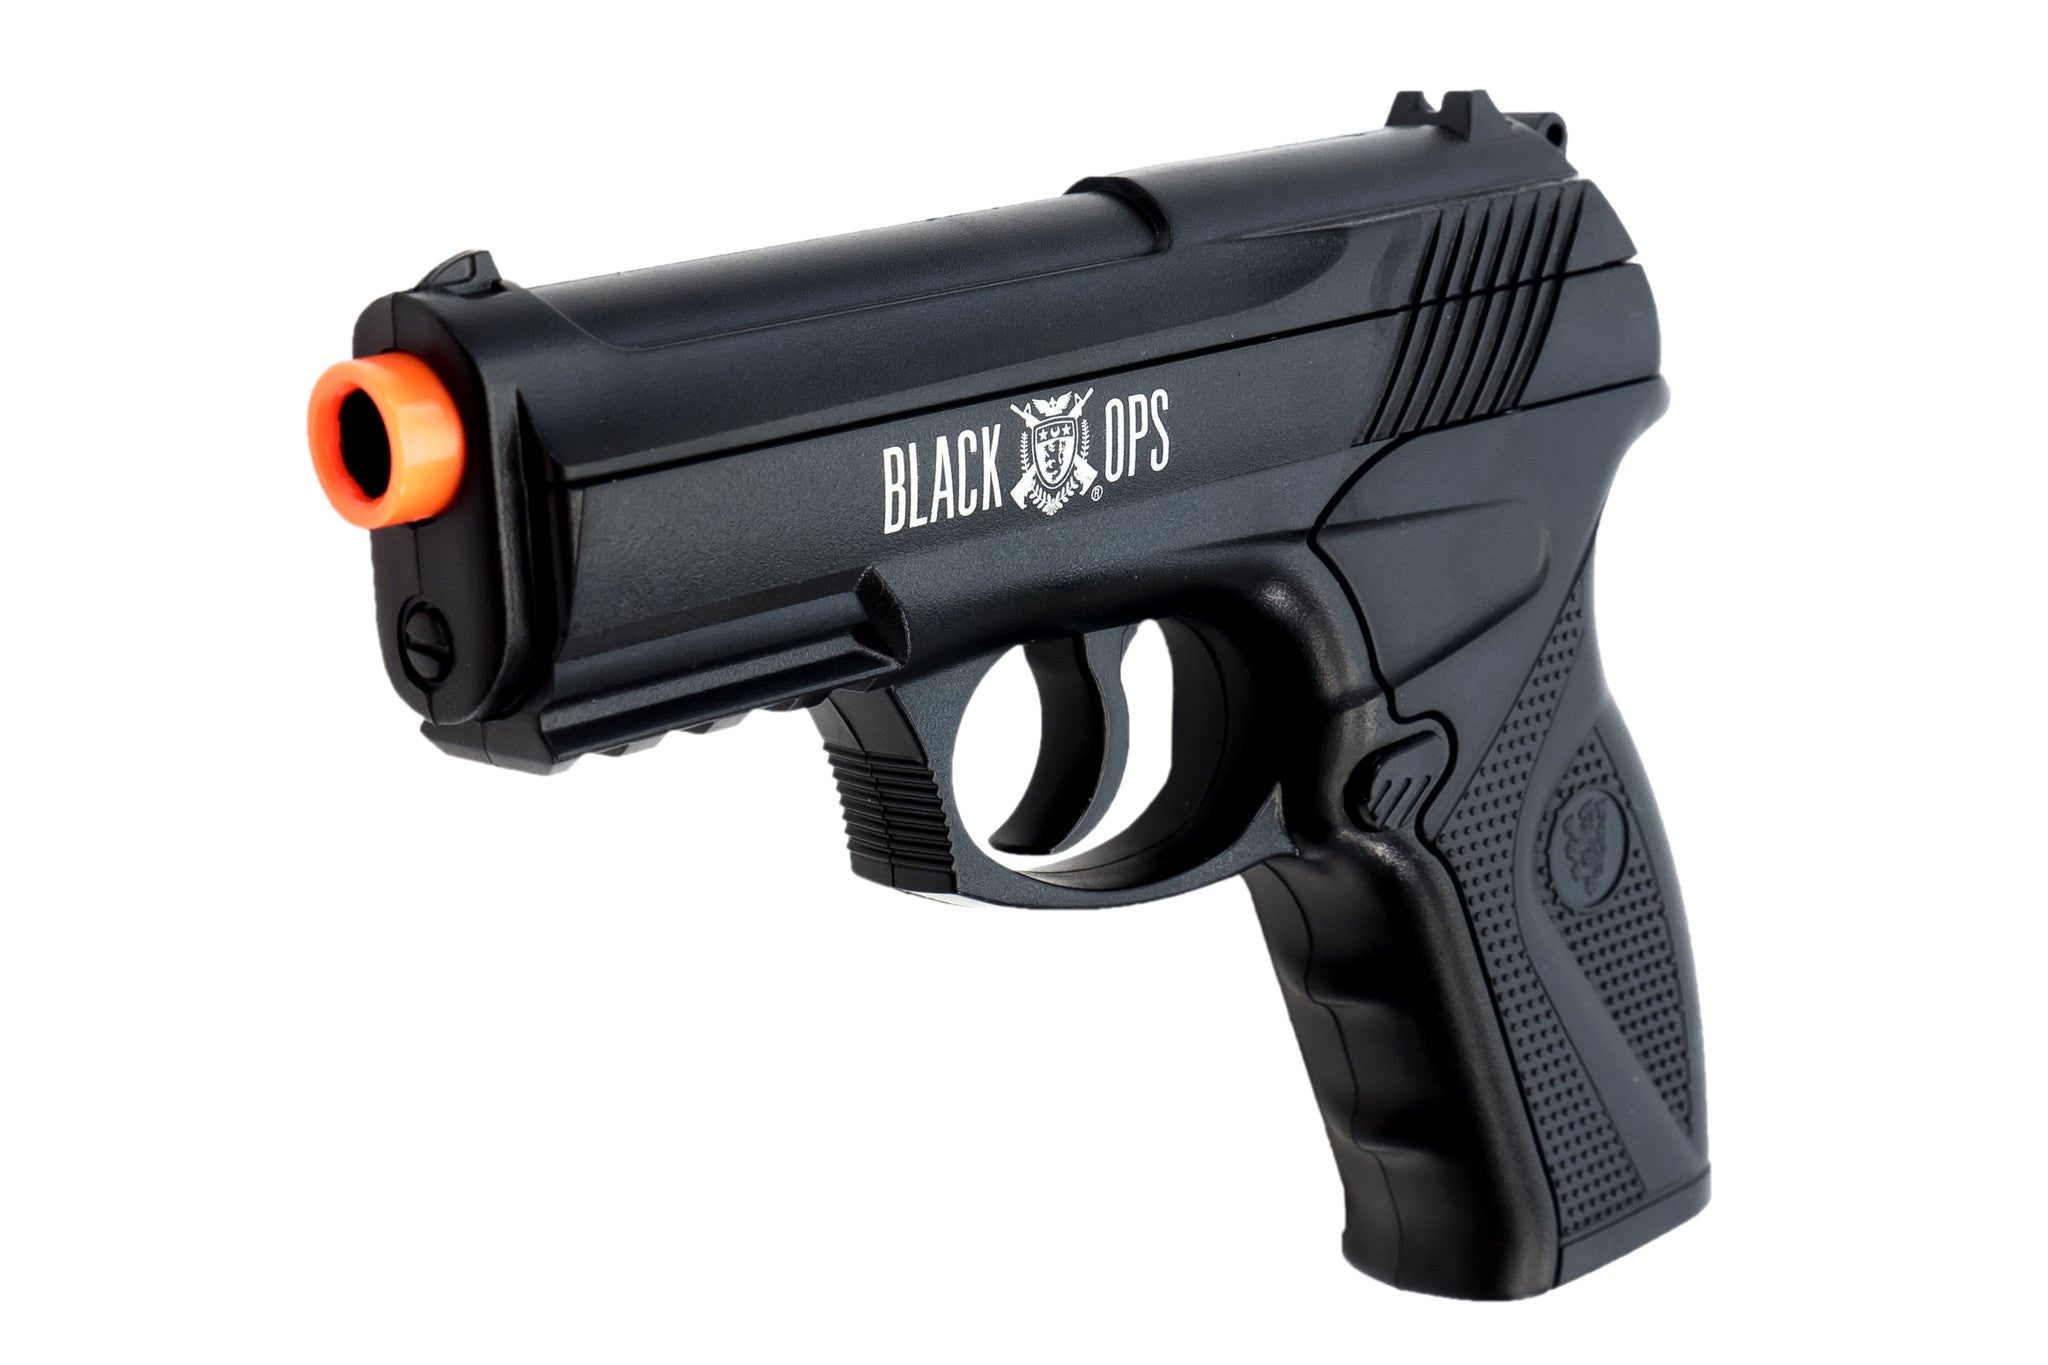 Black Ops BOA Semi Automatic Airsoft Pistol - C02 Powered